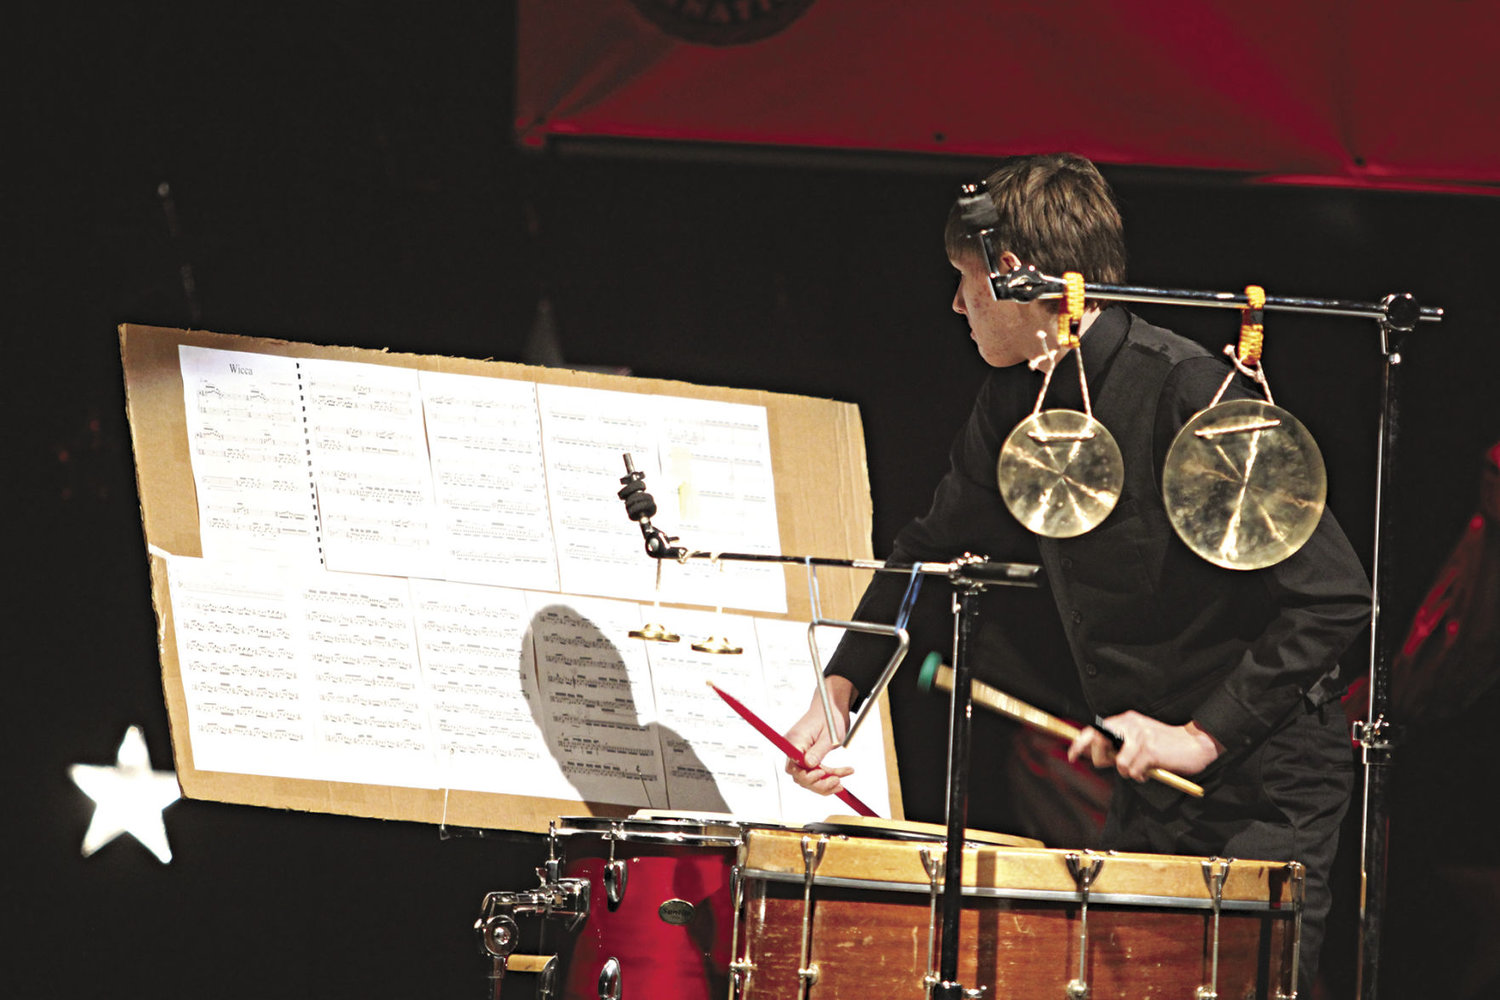 Forrest Brennan, a 12th-grader, received second place at Stars of Tomorrow in the senior division. Brennan is also set to perform at the All-County Picnic and Concerts on the Dock. Photo by Allison Arthur